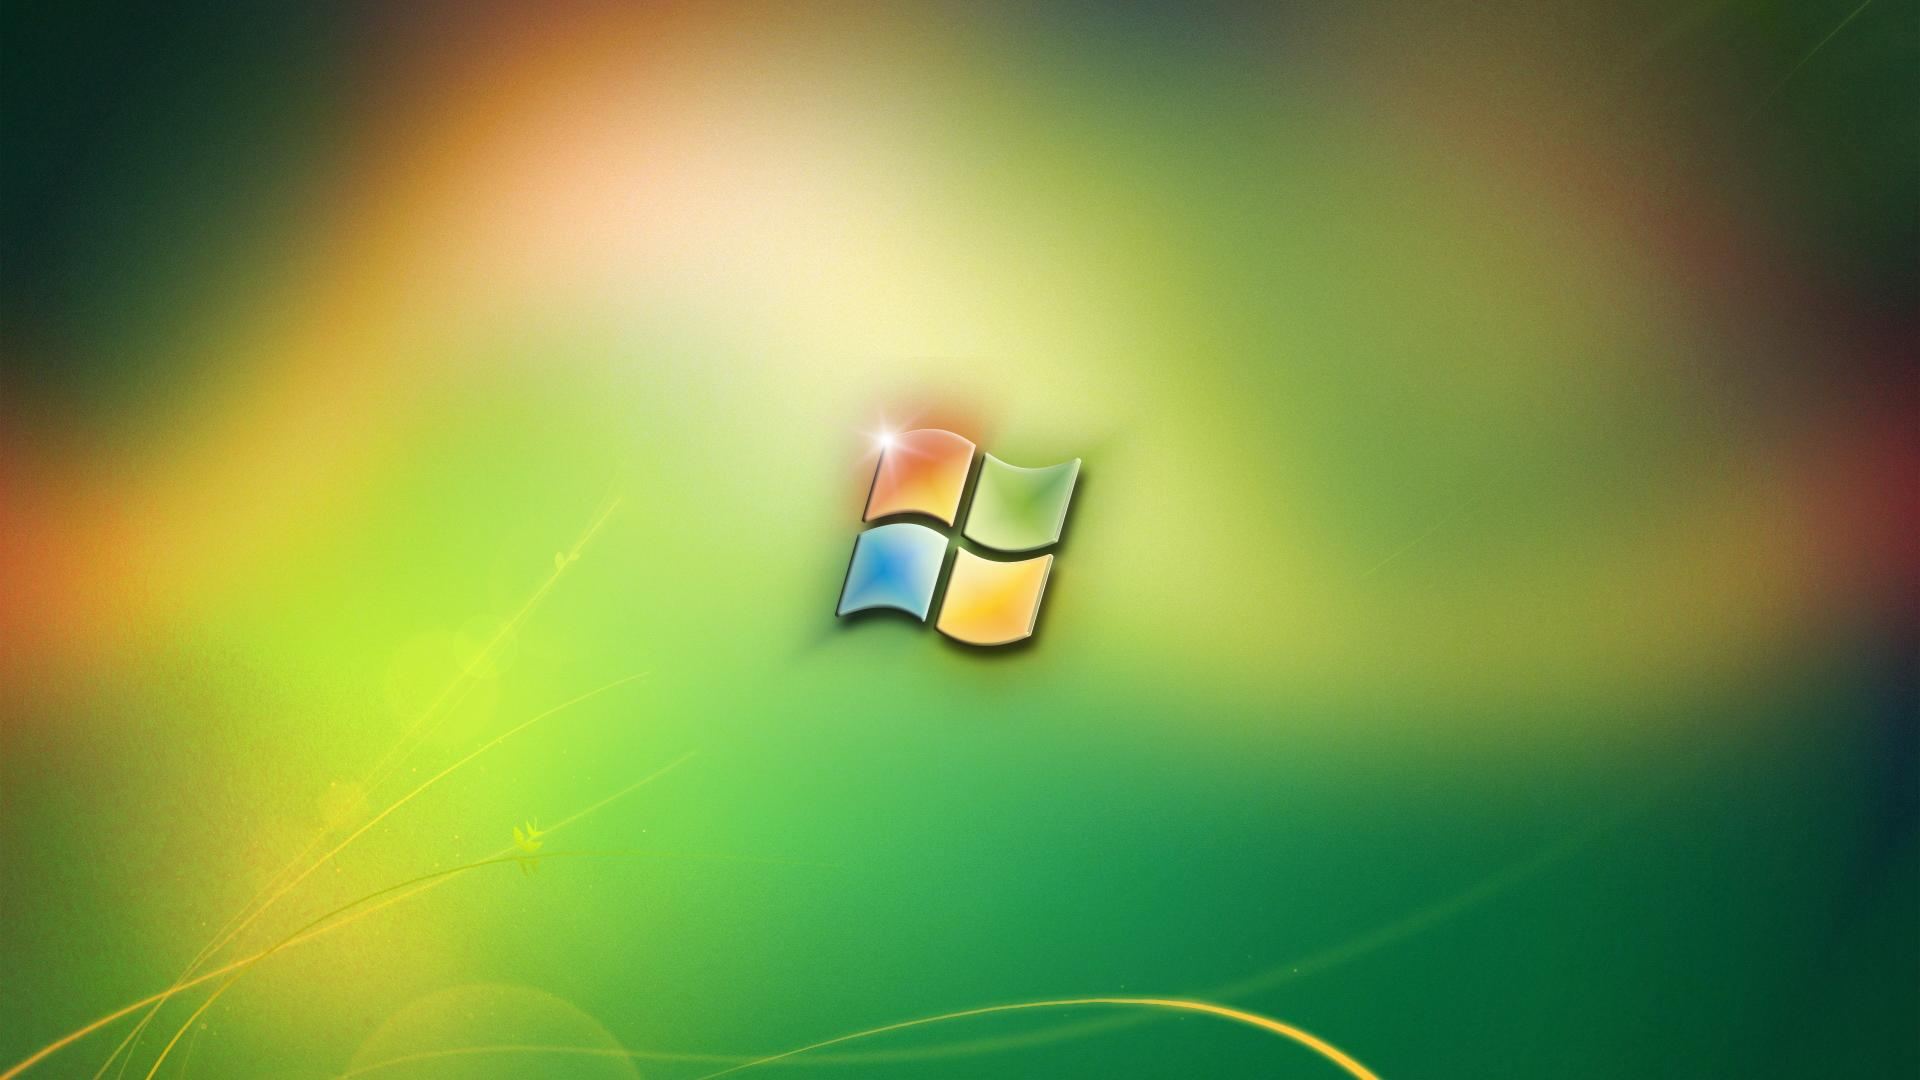 50 cool windows xp wallpapers in hd for free download for Window background